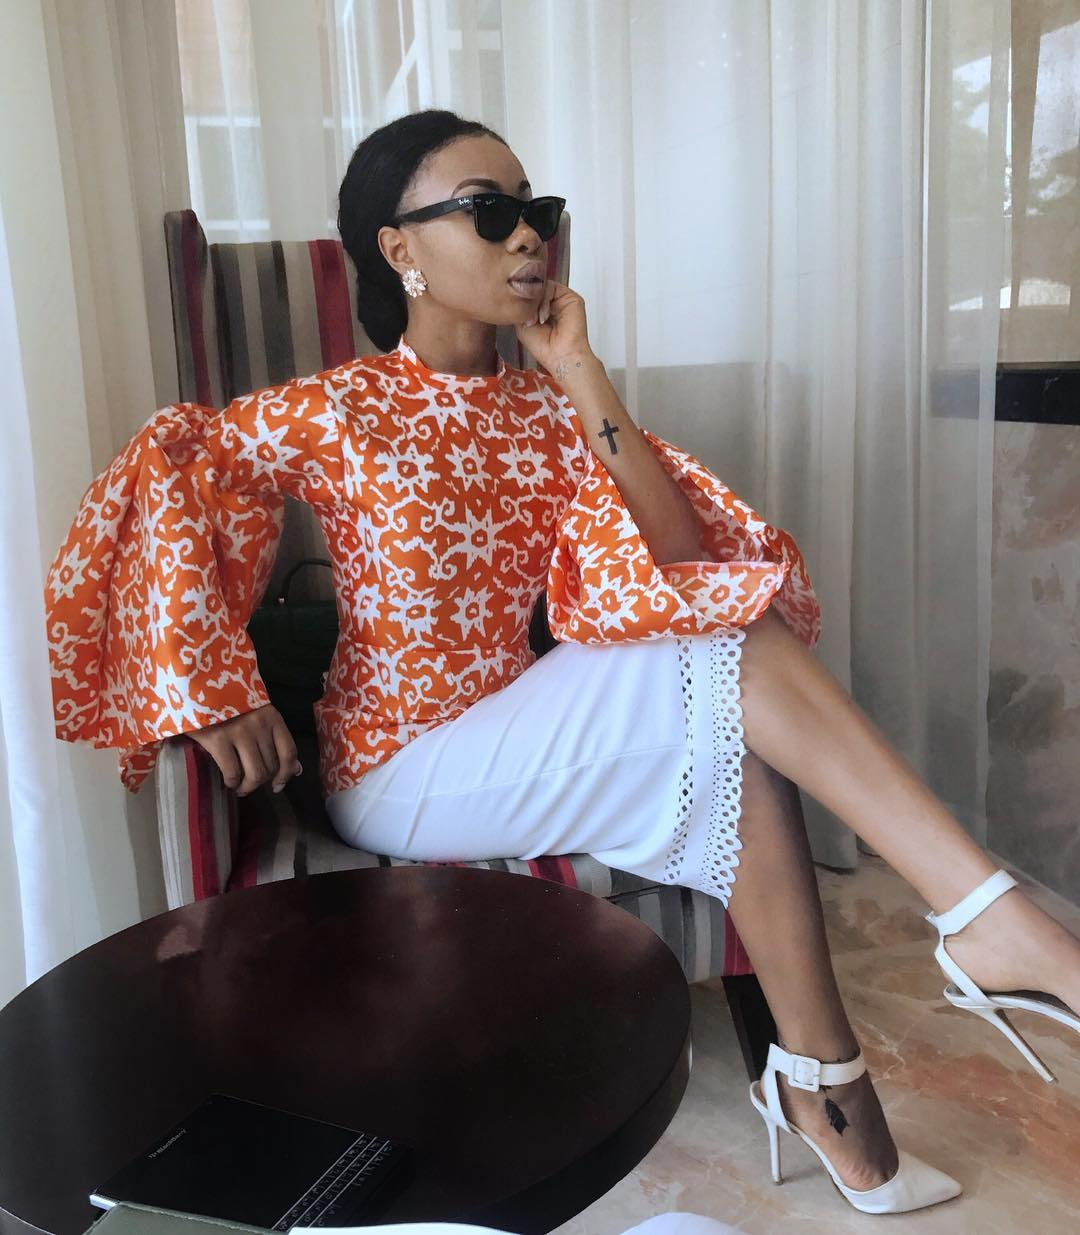 mo cheddah - Mo Cheddah Shows Us The Right Way To Wear Print